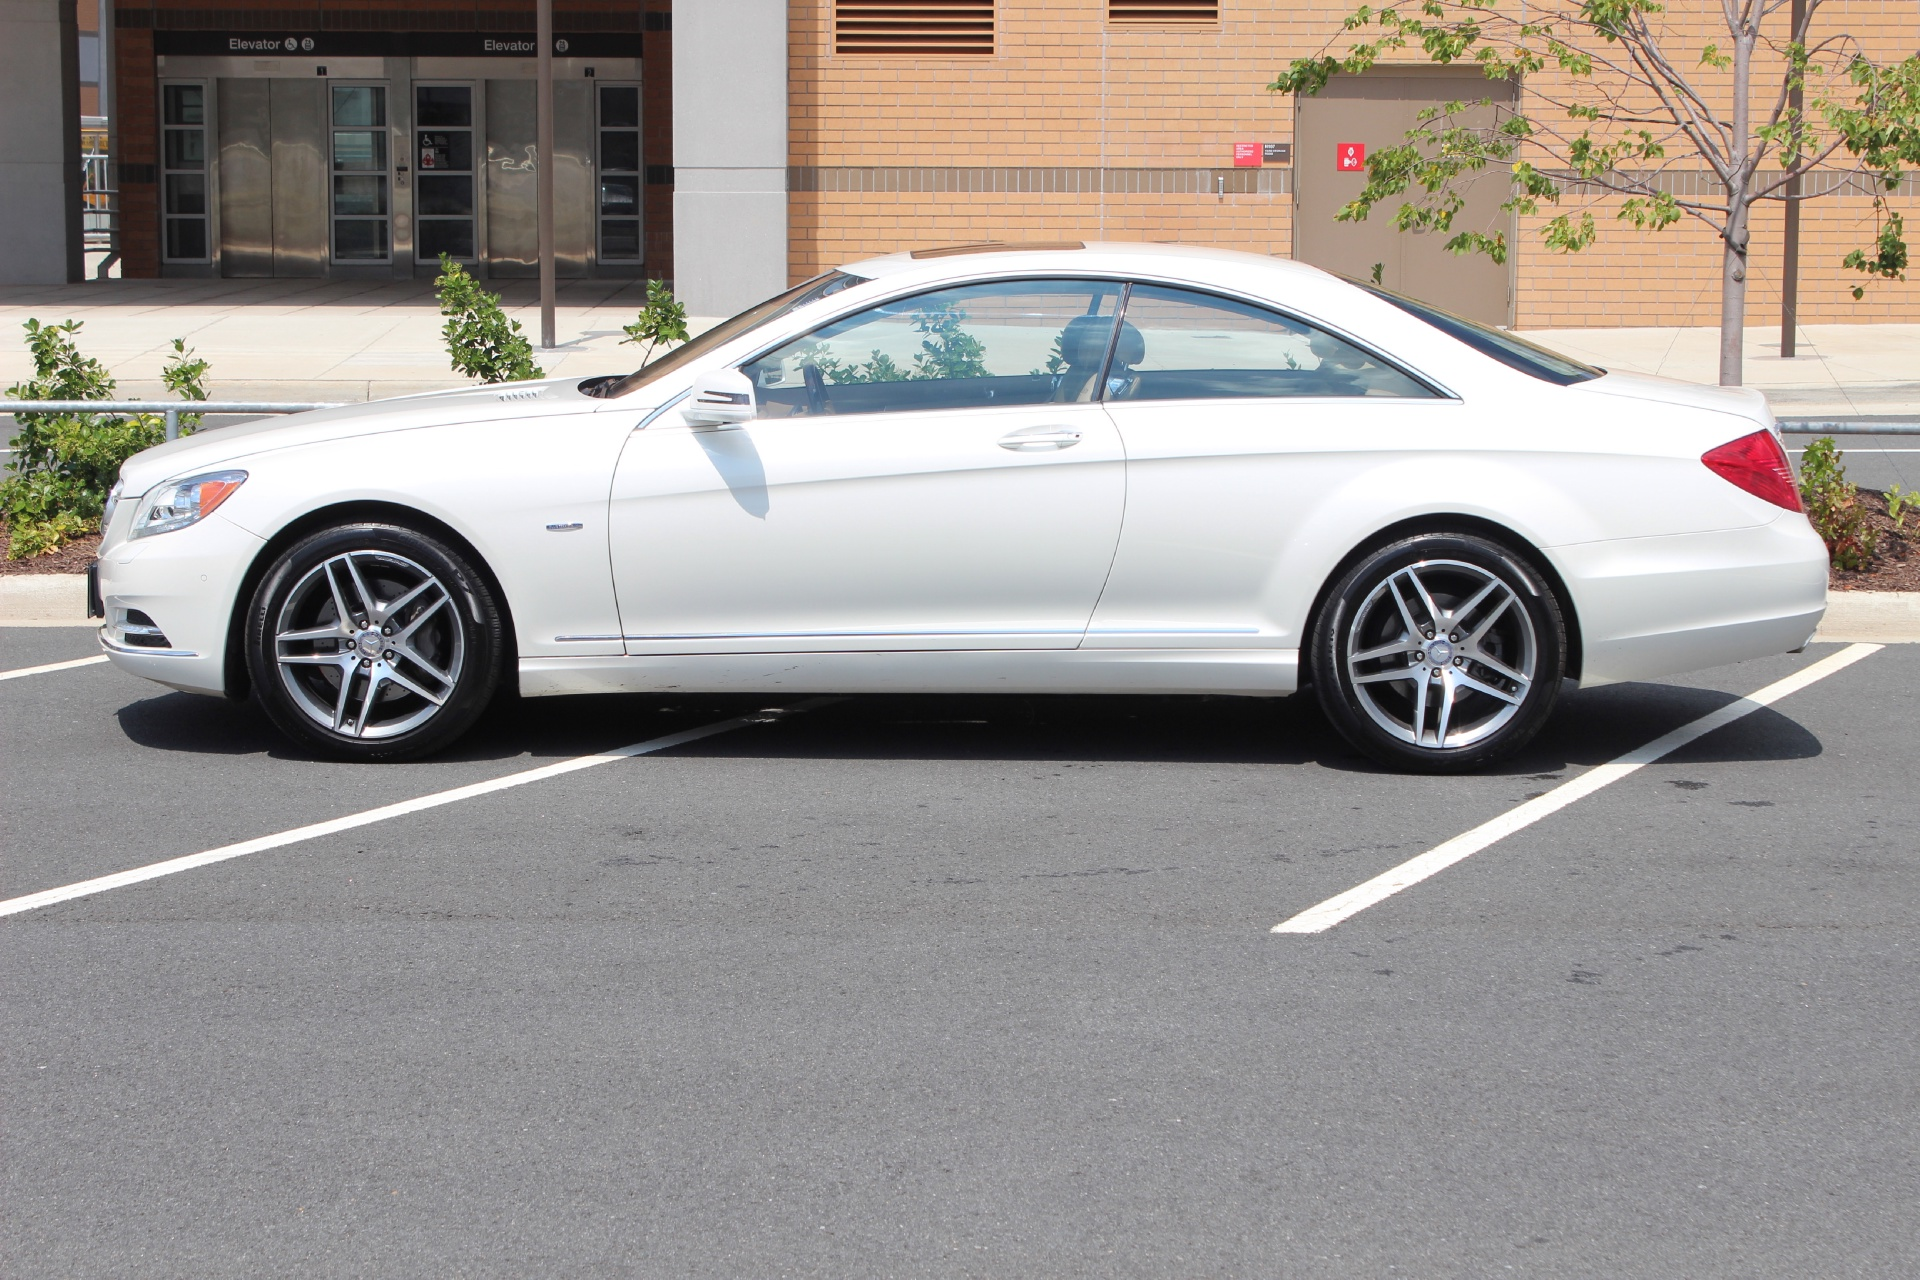 2012 mercedes benz cl class cl550 4matic stock p079423a for Mercedes benz dealership for sale